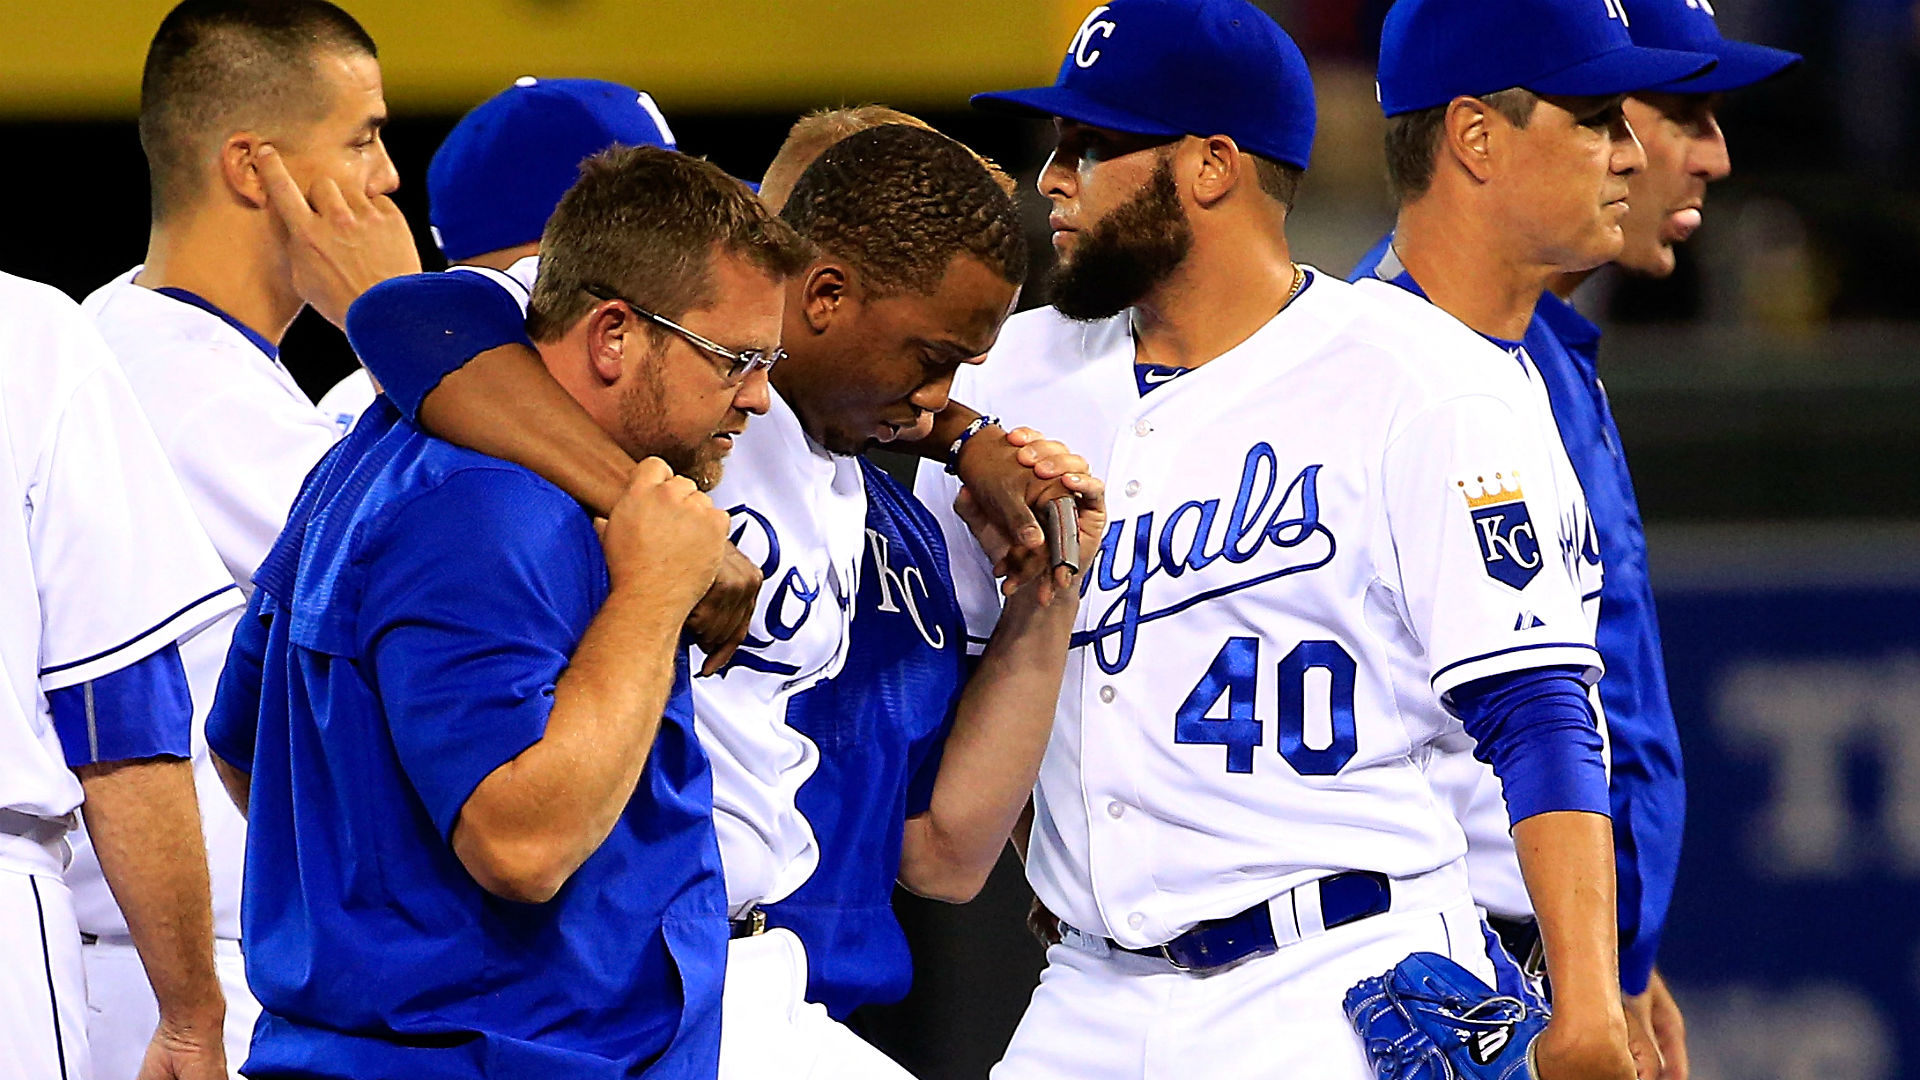 Confusion surrounds Brett Lawrie's apology to Royals' Alcides Escobar